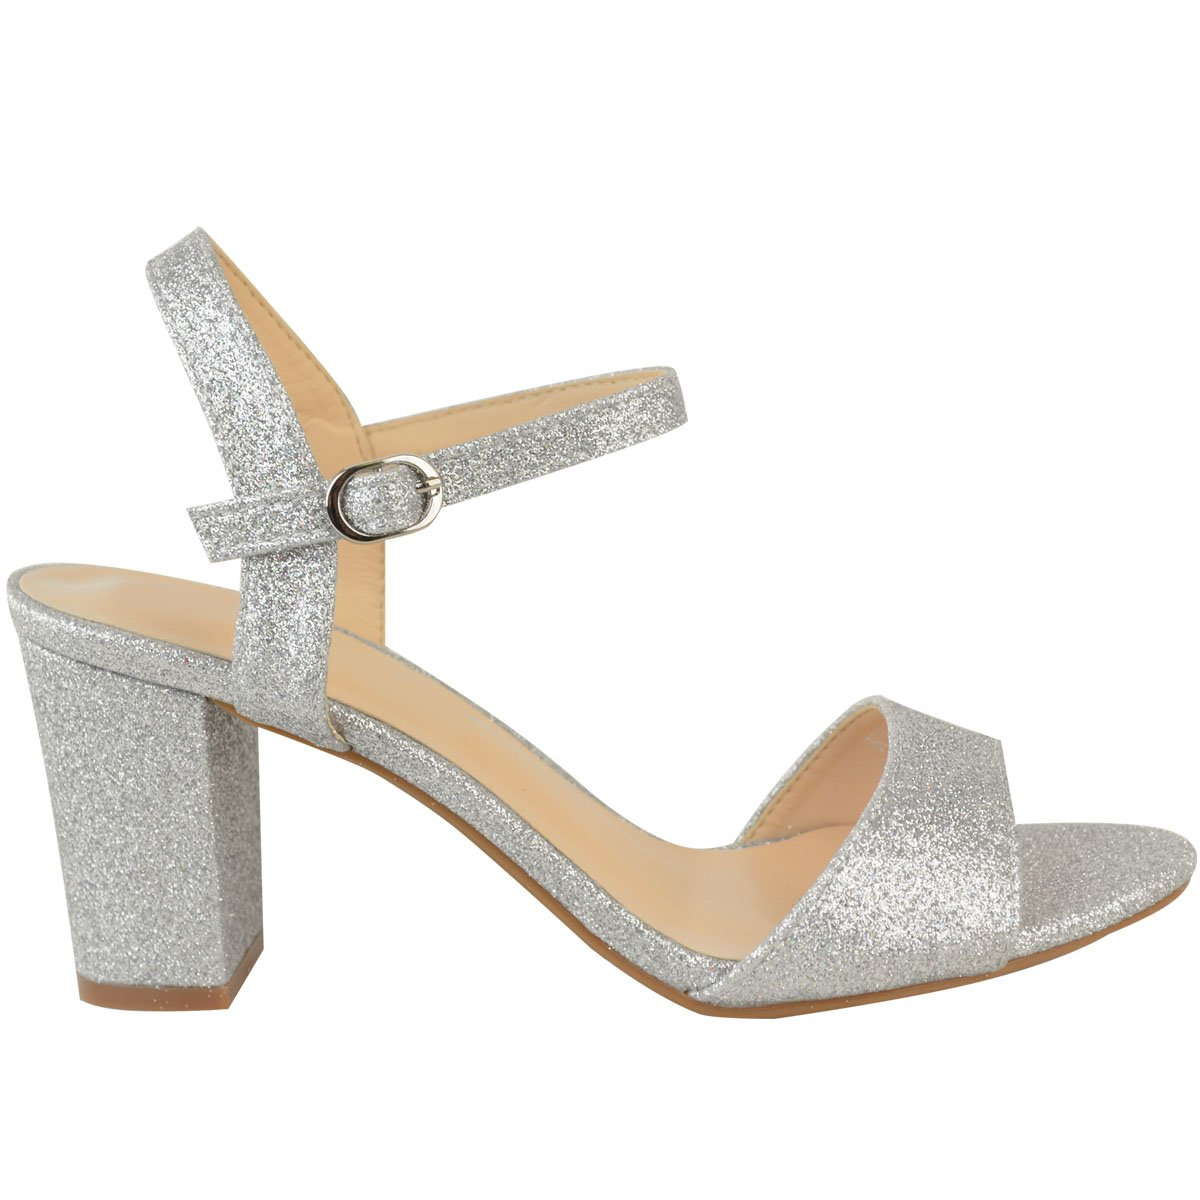 d45db07137f3 Fashion Thirsty Heelberry® Ladies Womens Low Block Heel Party Bridal Glitter  Sandals Wedding Prom Shoes Sz  Amazon.co.uk  Shoes   Bags